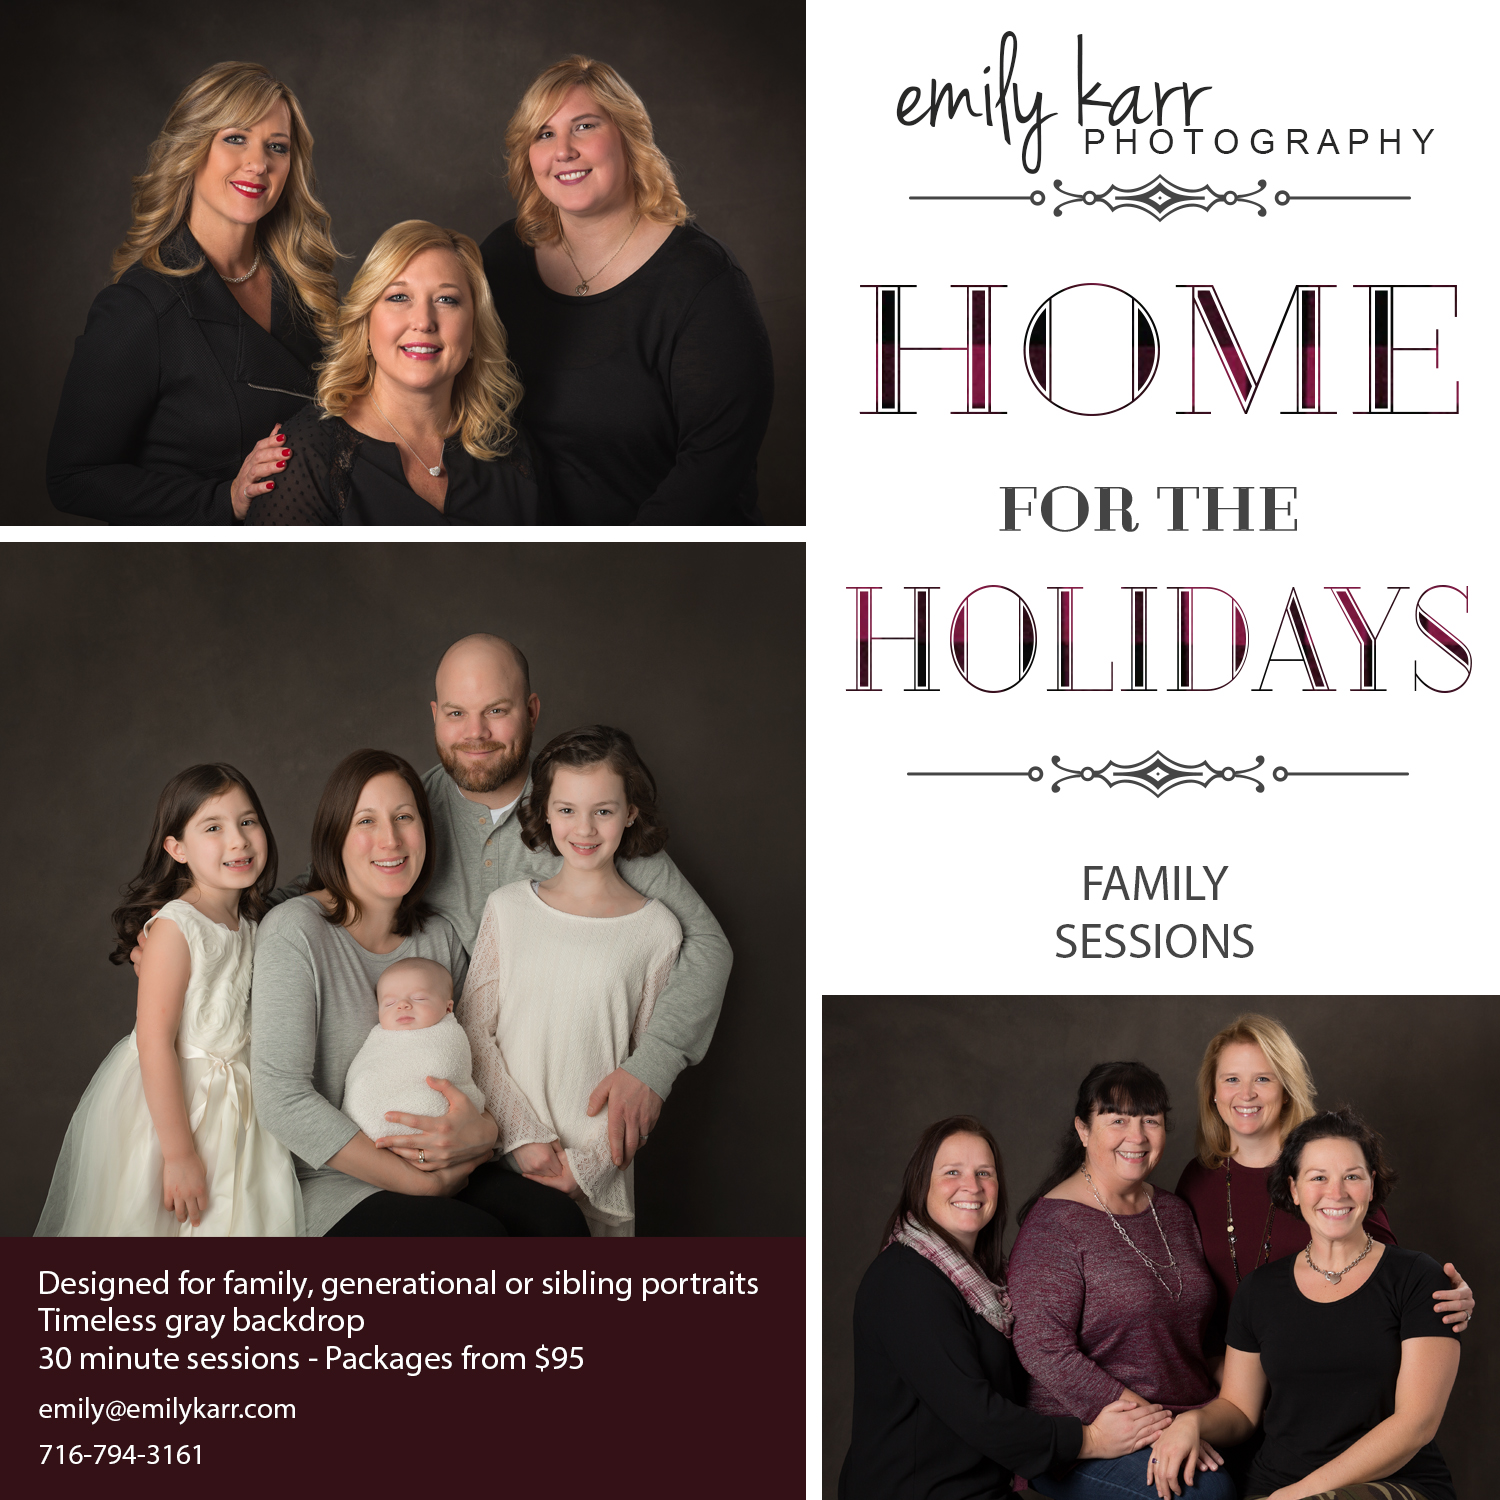 family portrait session, generational portraits, holiday photos